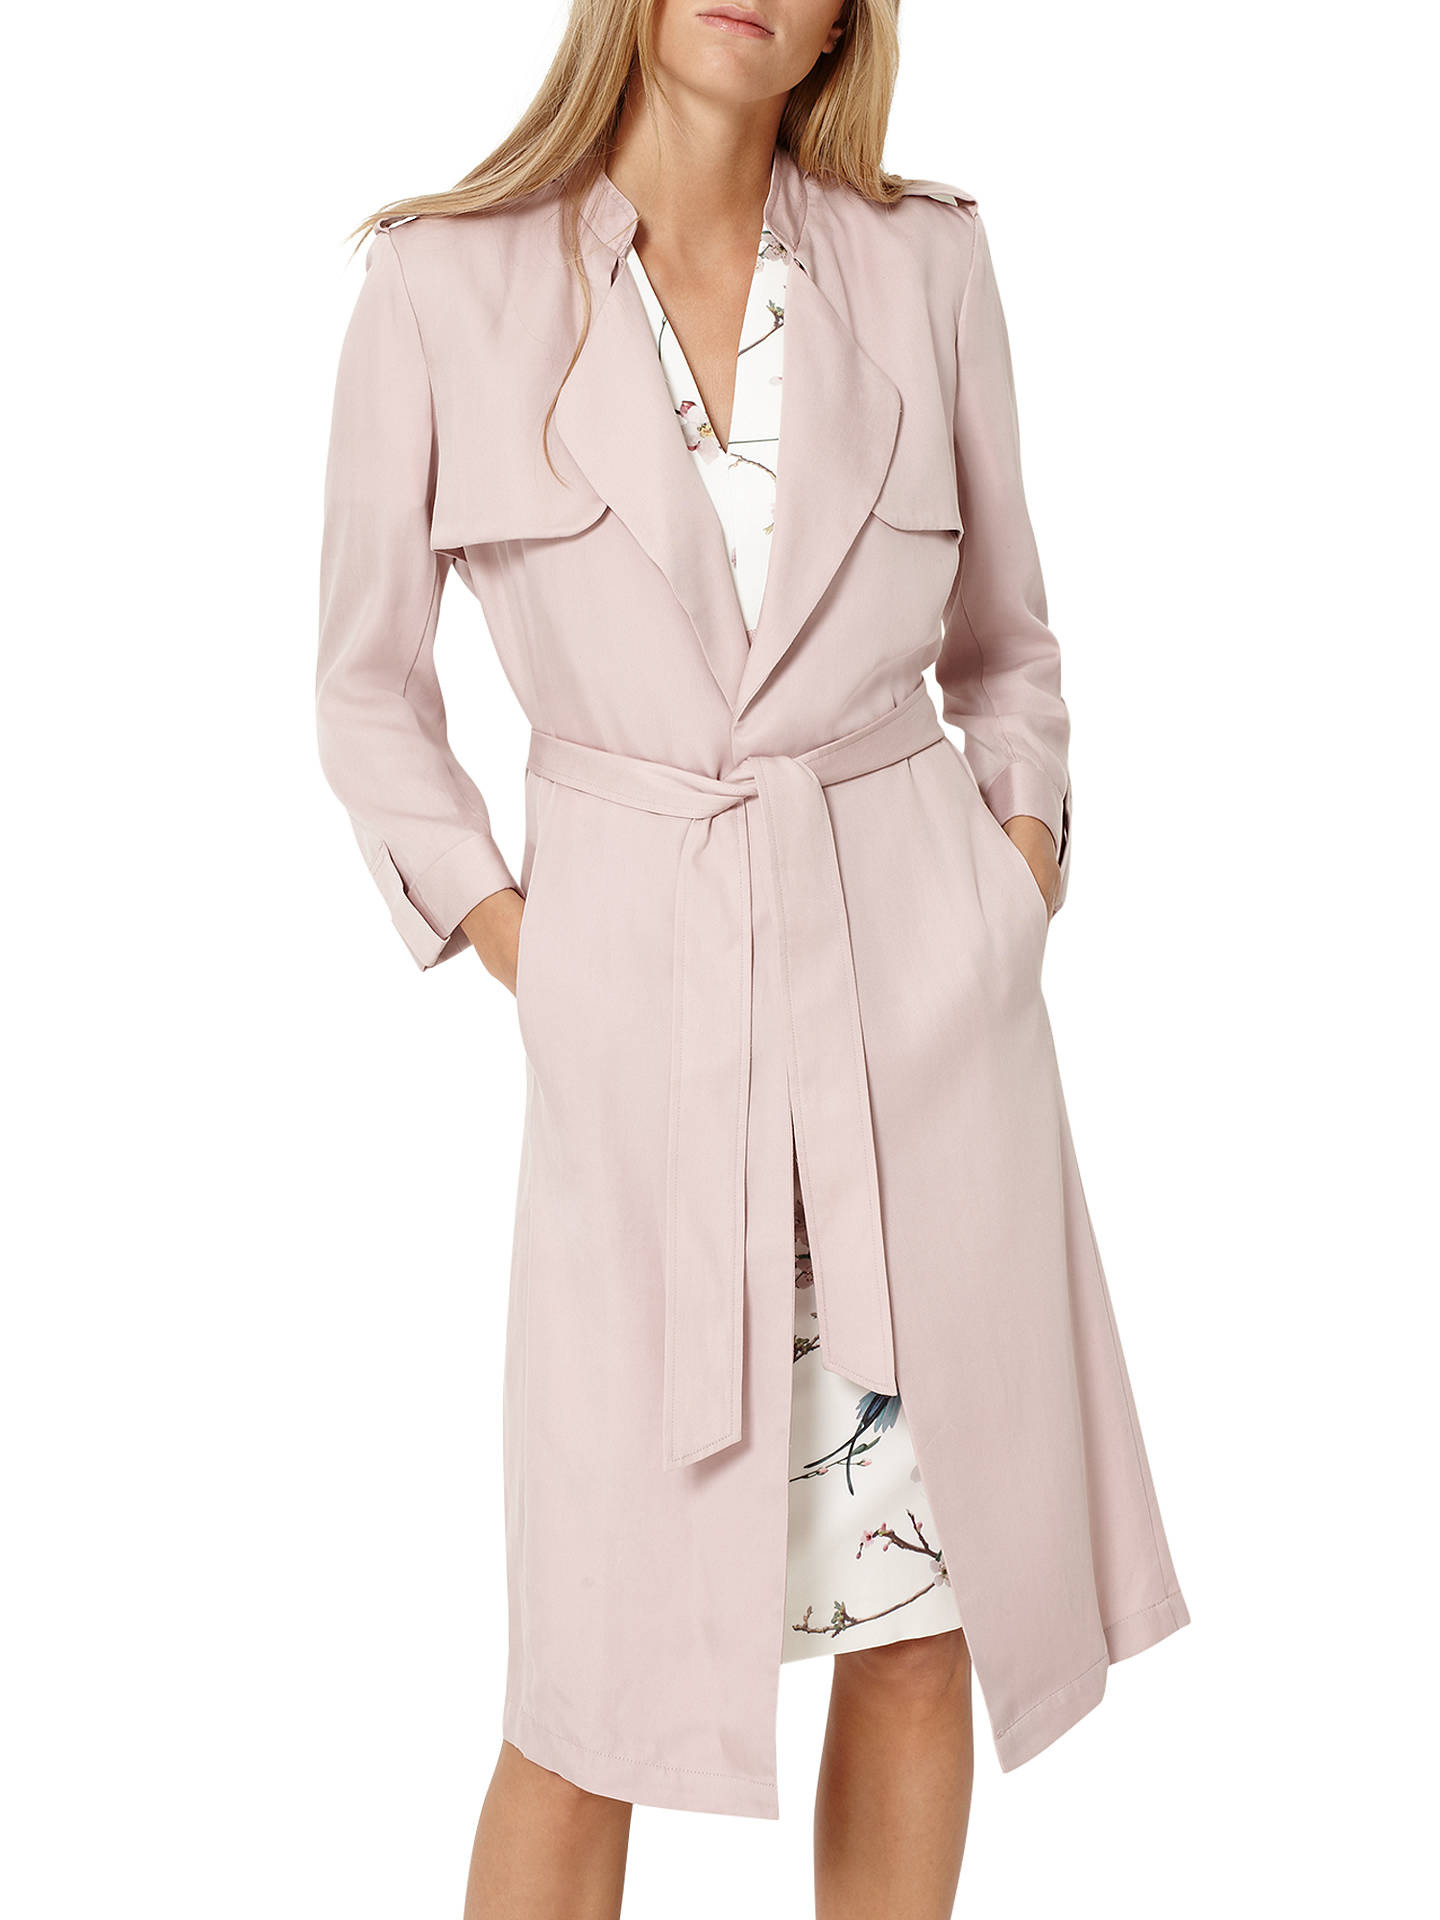 Damsel In A Dress Yukata Drape Coat, Pink by Damsel In A Dress